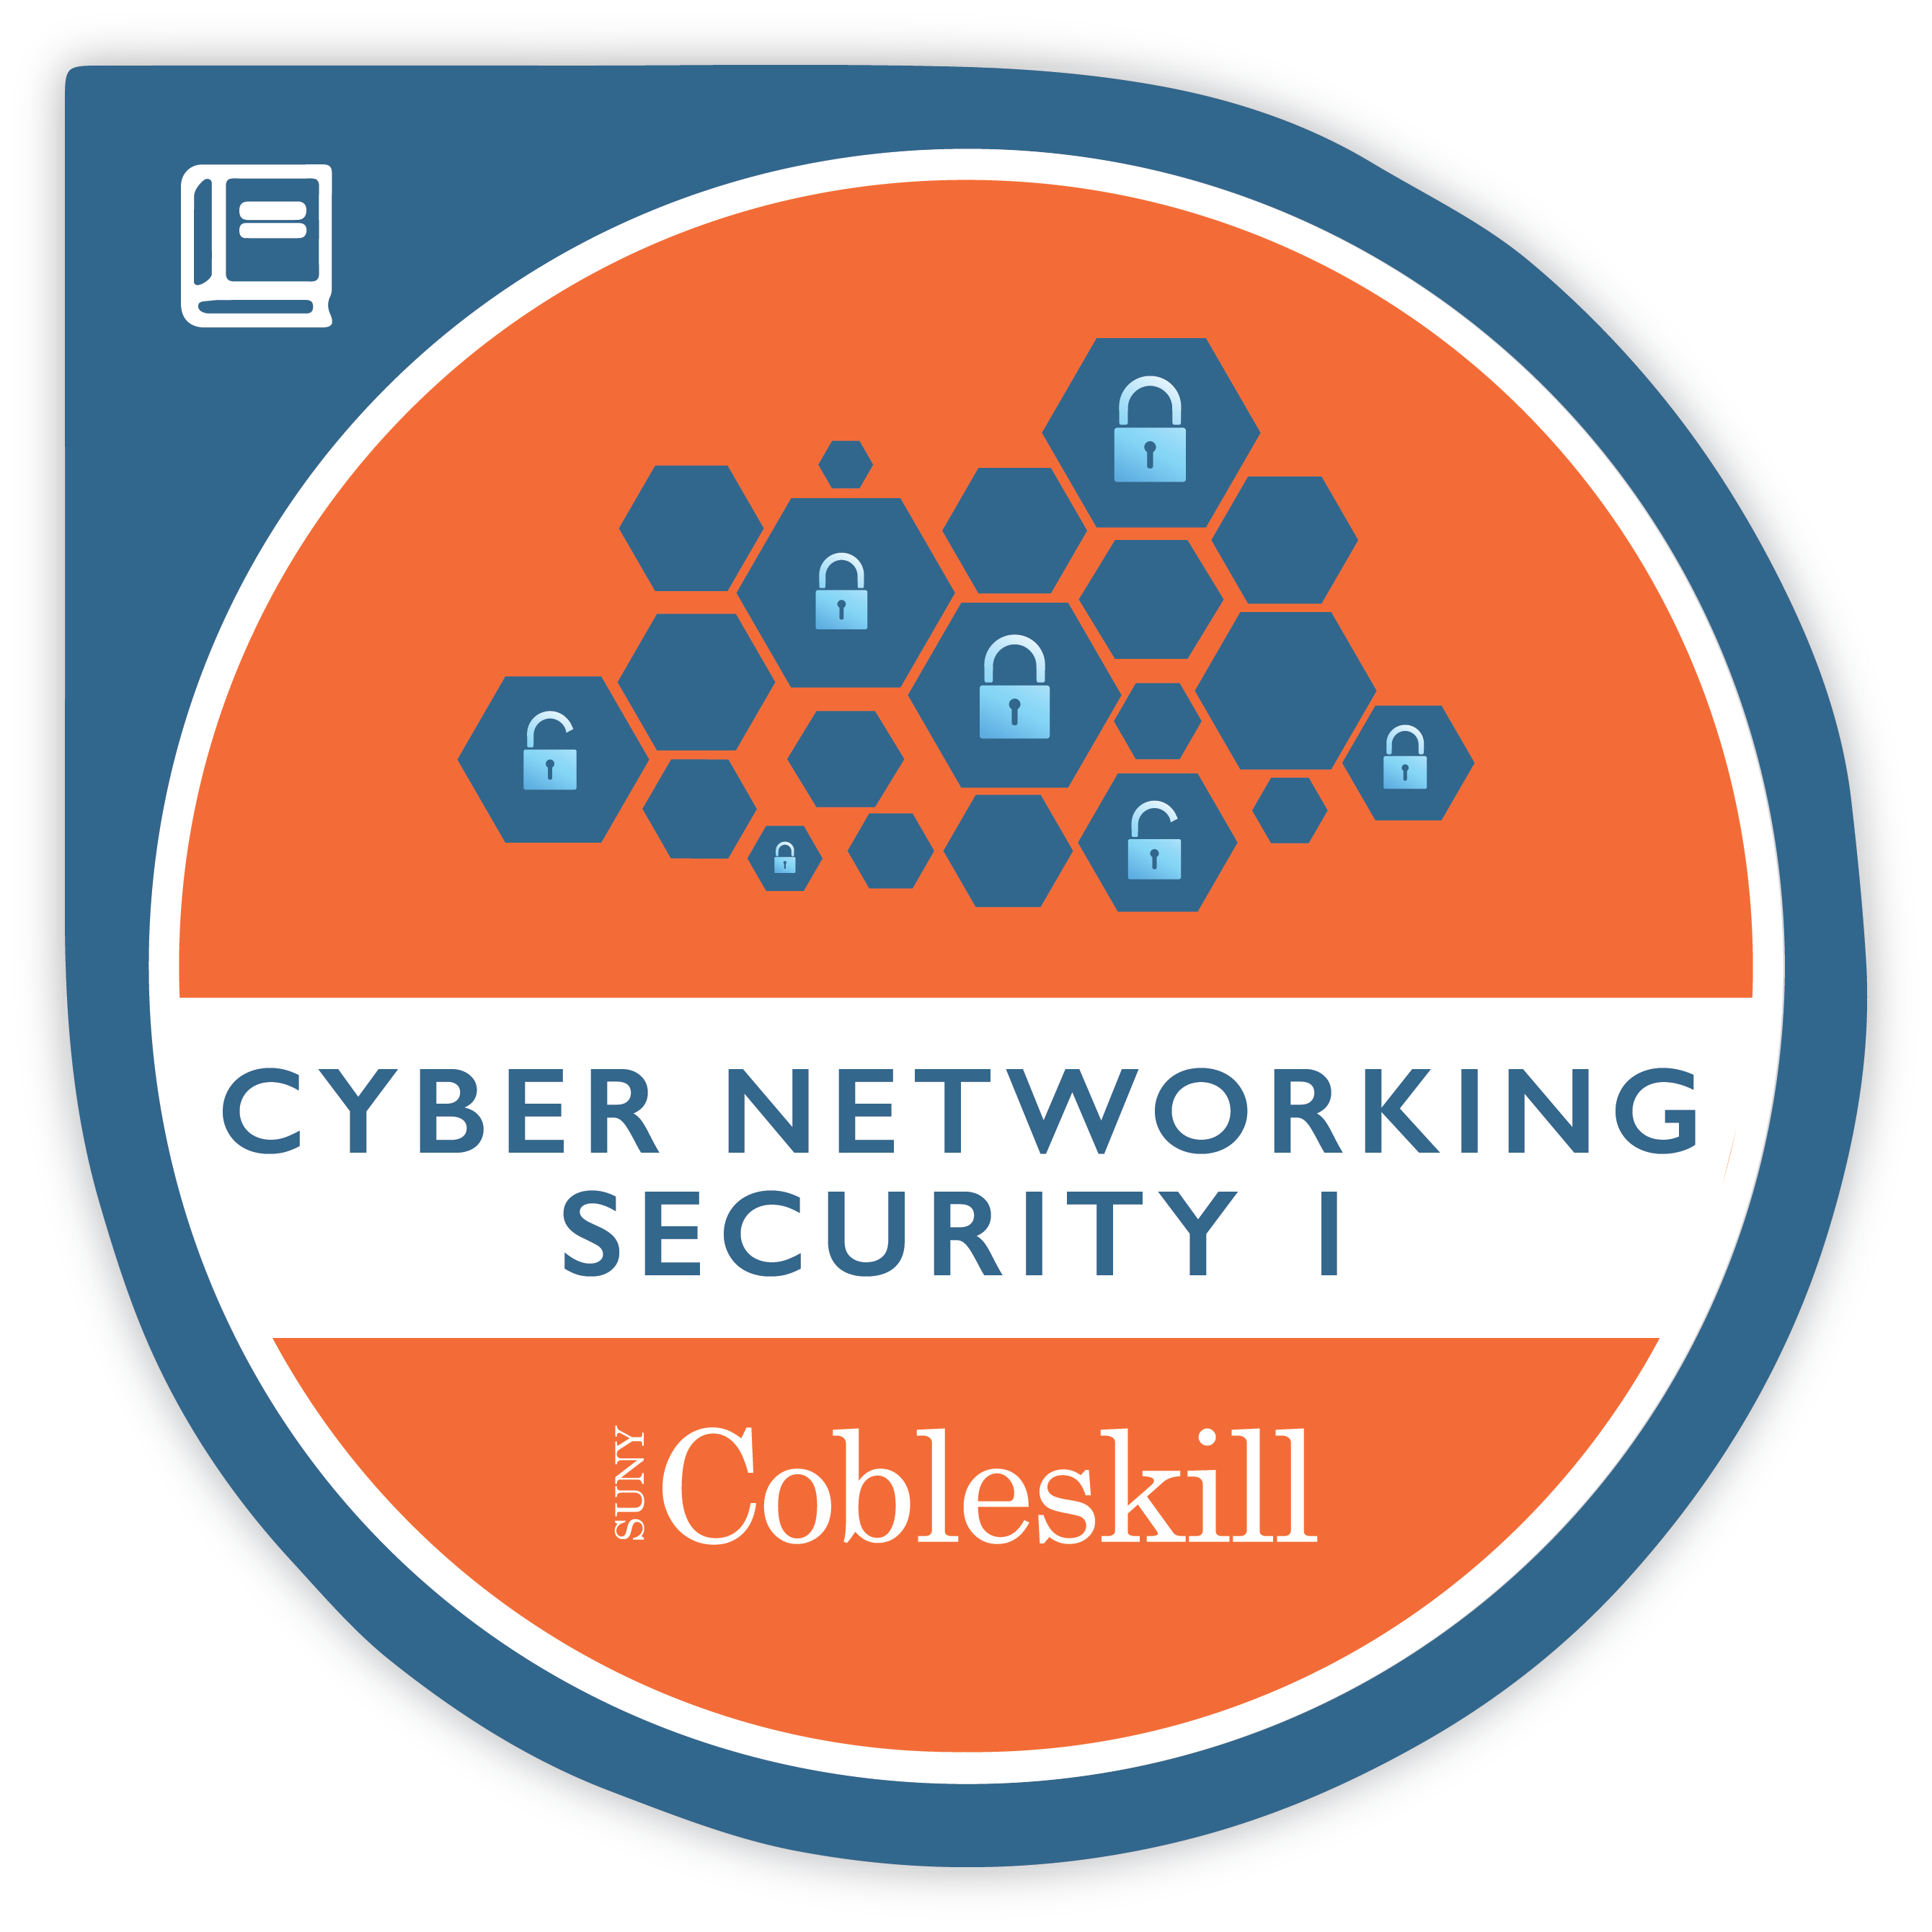 Cyber Networking Security badge